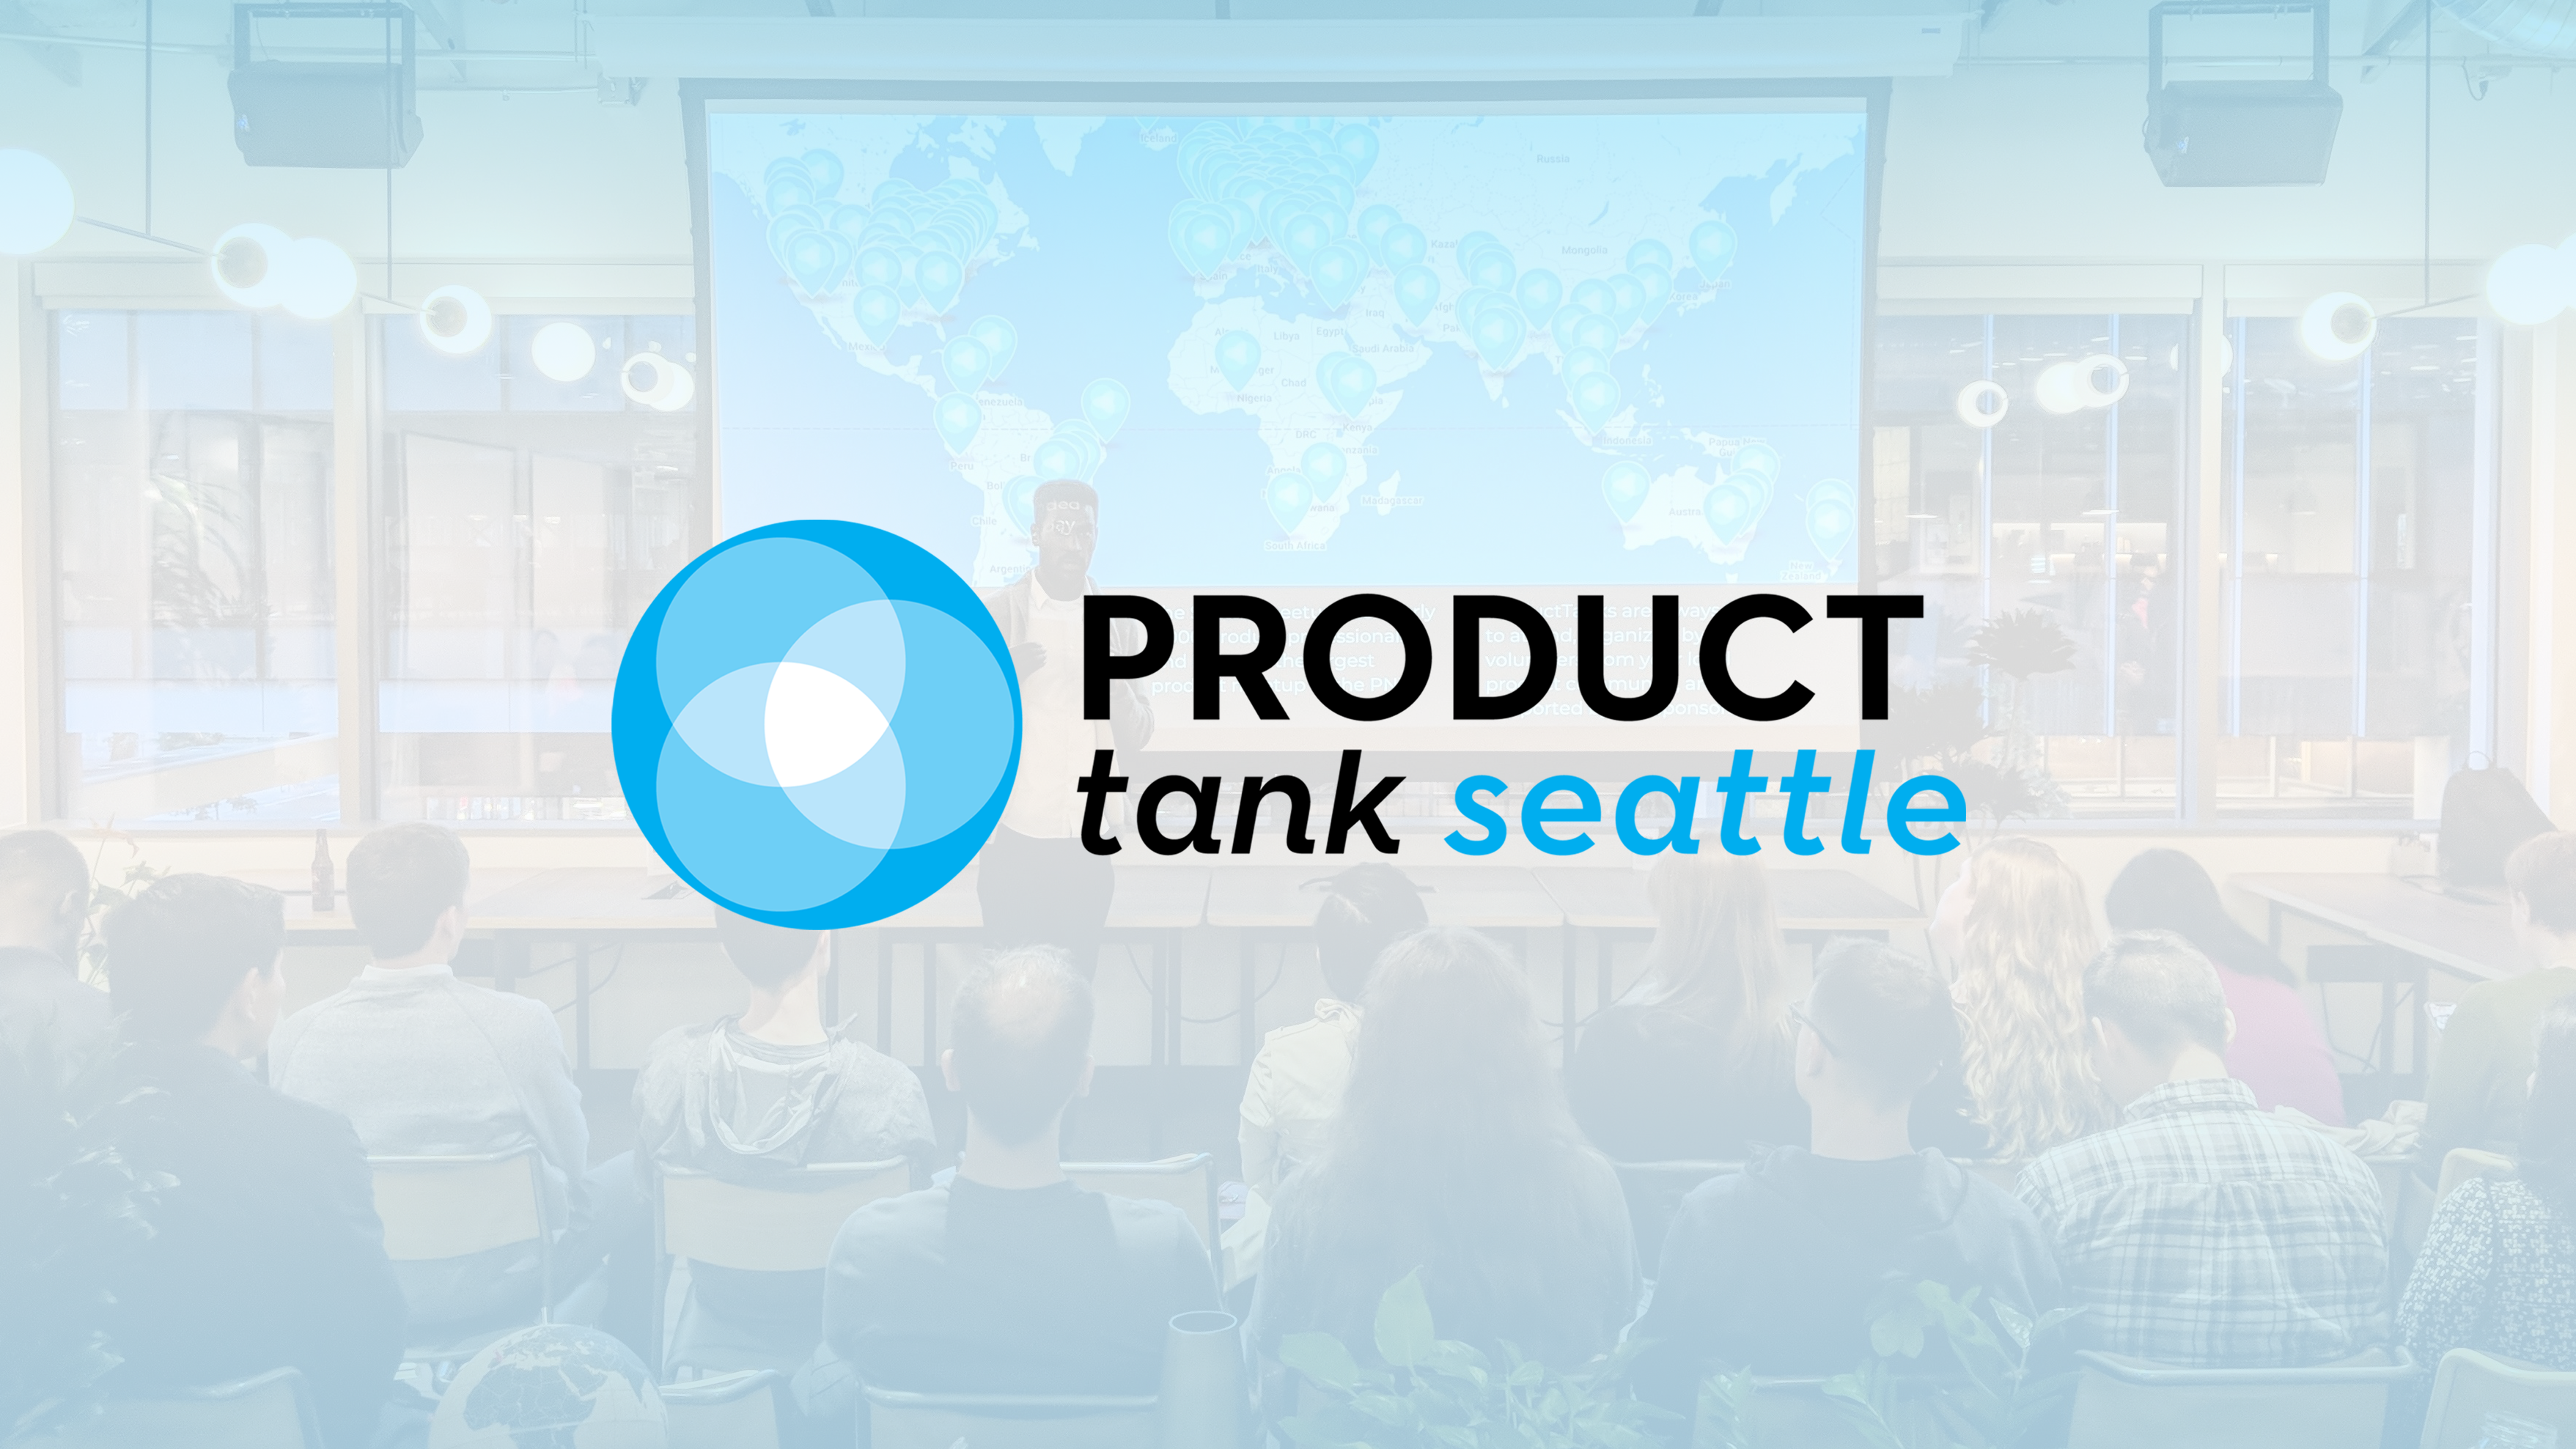 ProductTank Seattle